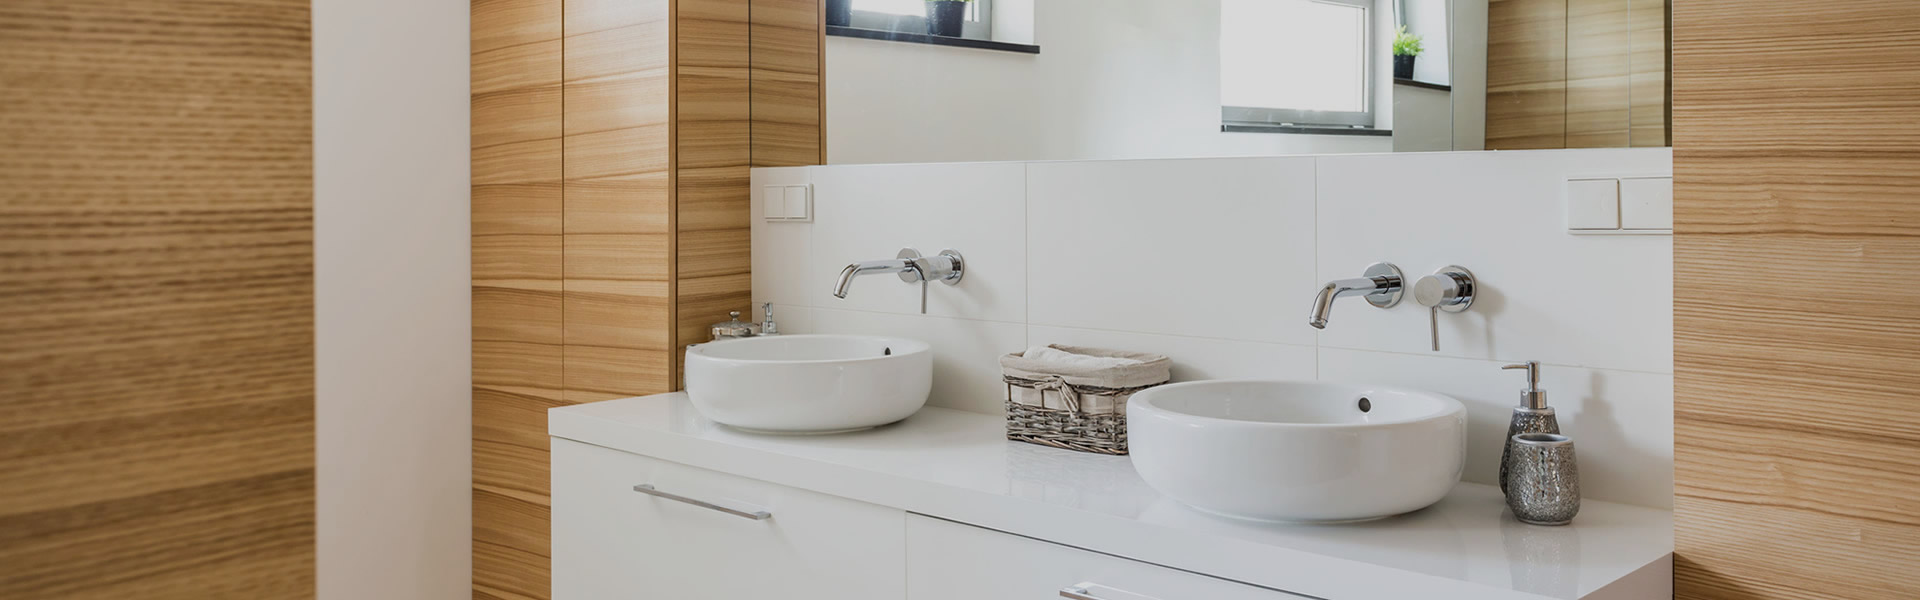 Complete Bathrooms Toowoomba - Build & Renovate